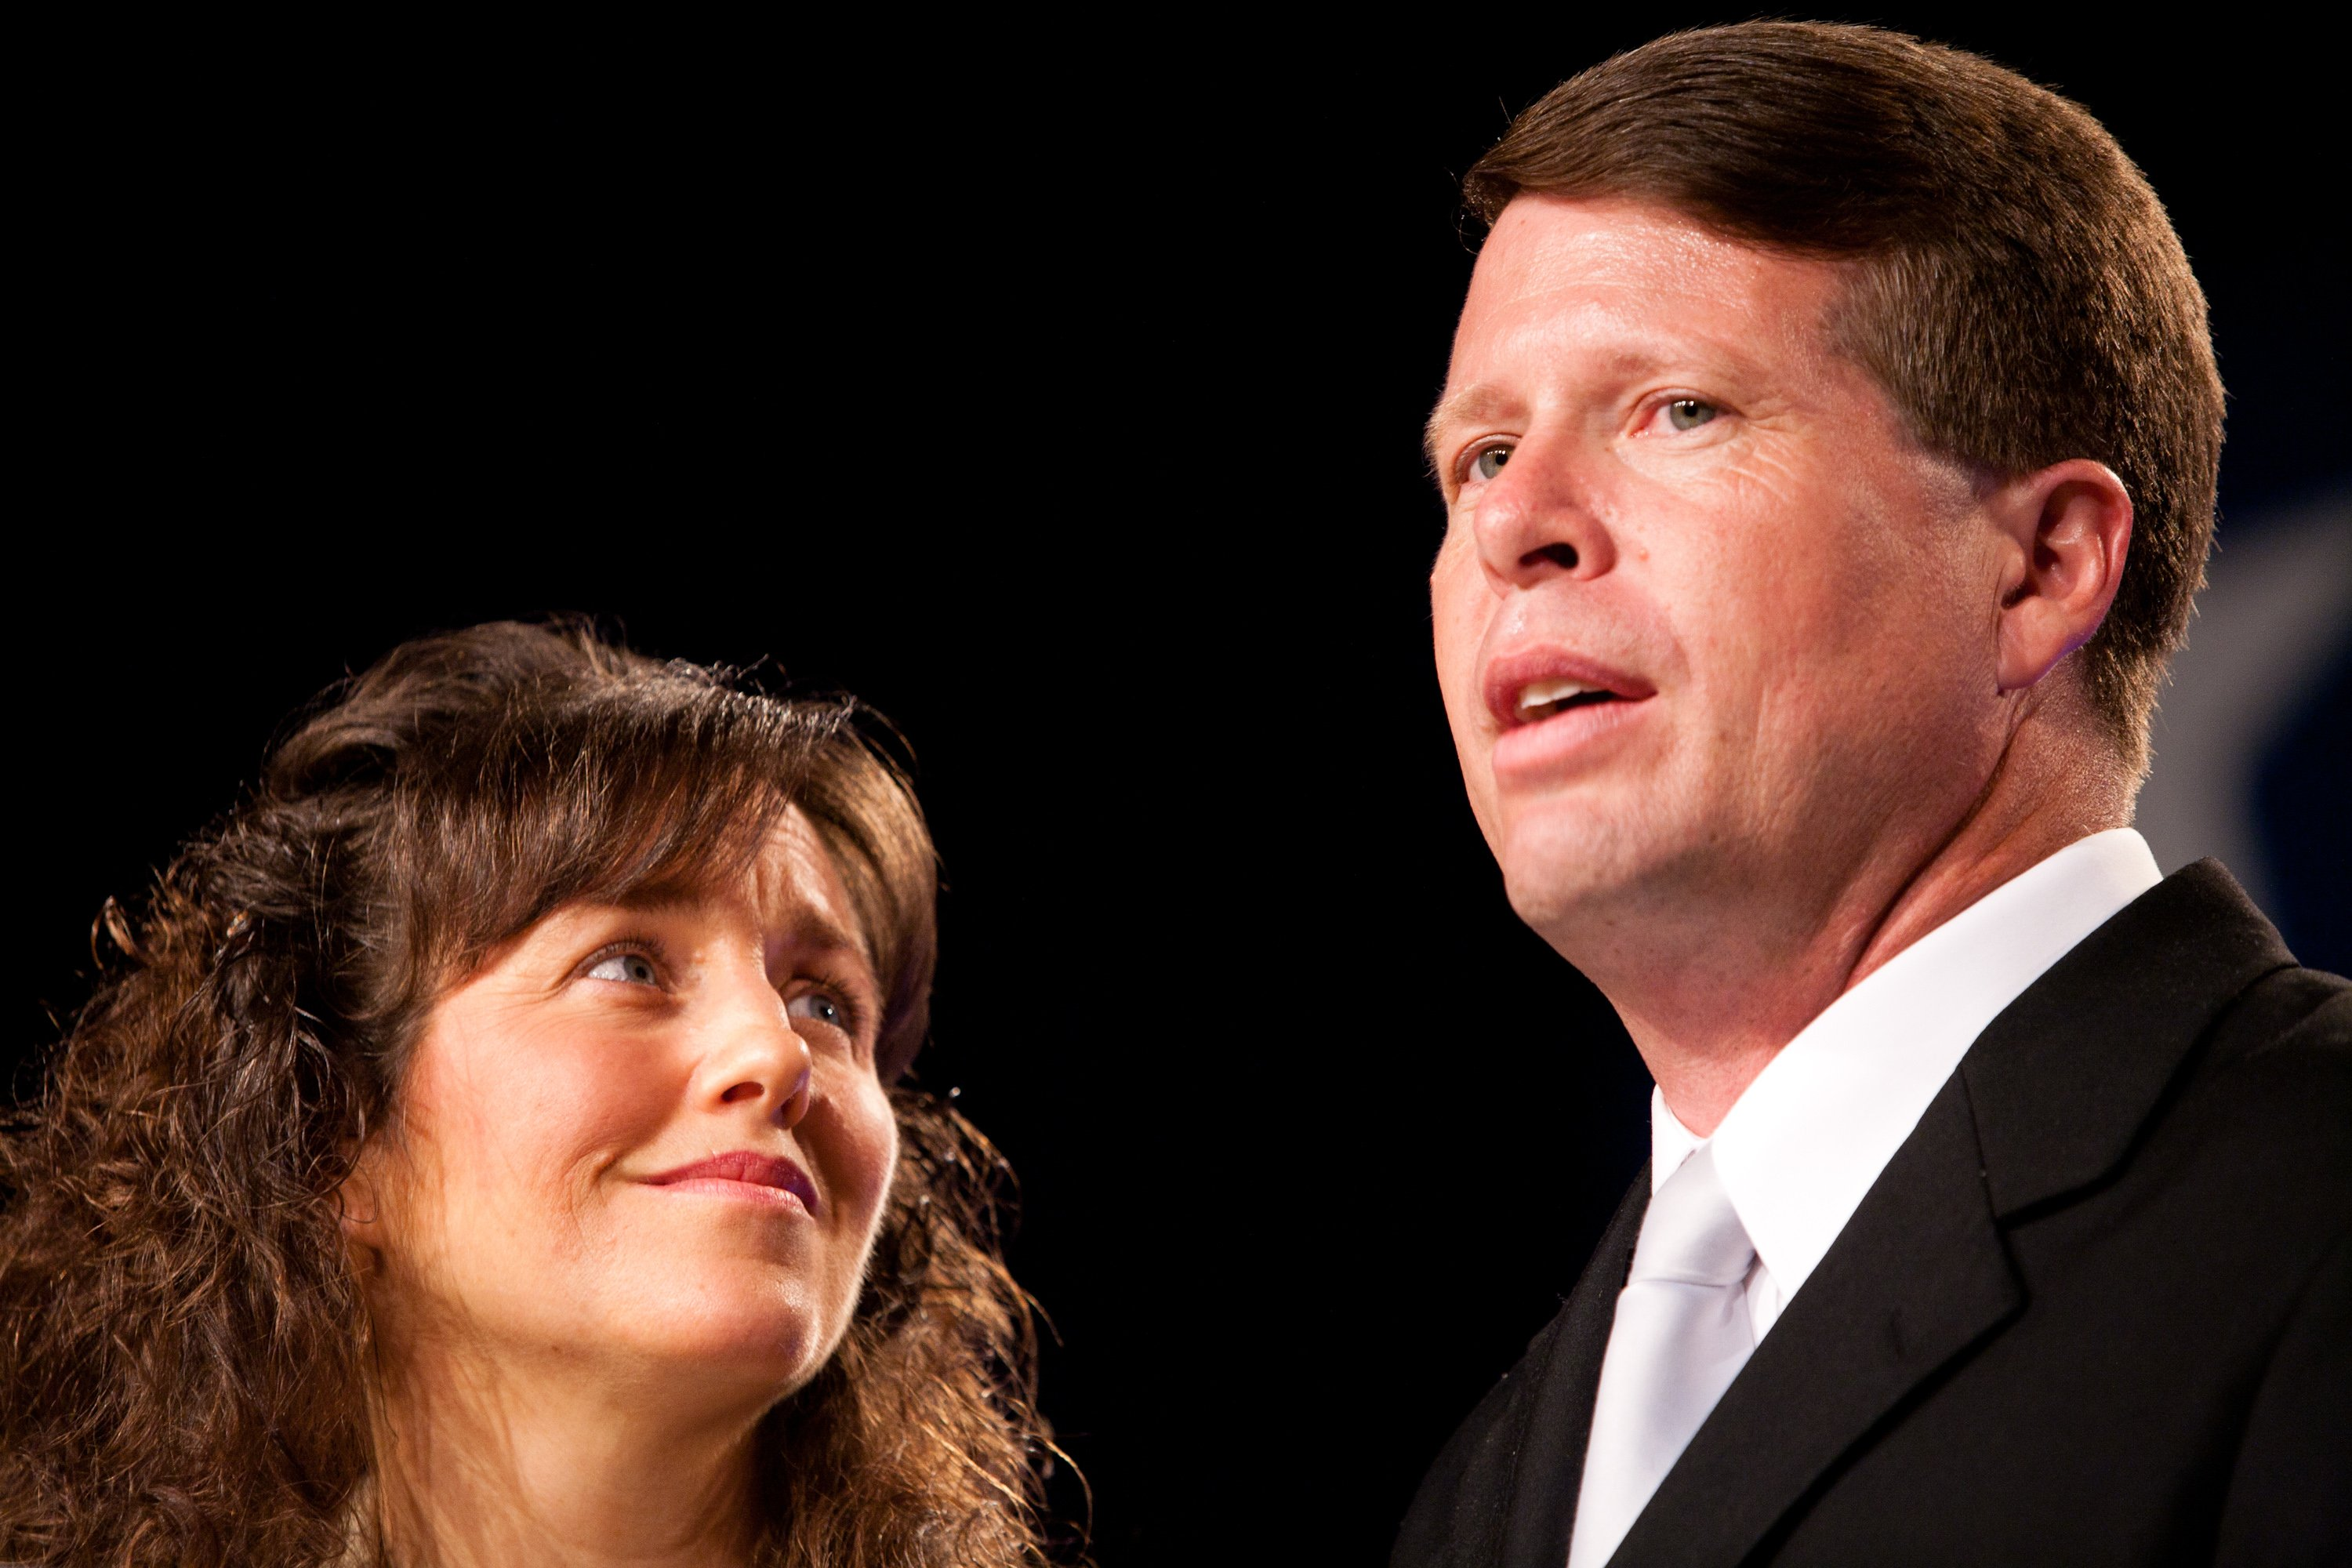 Jim Bob and Michelle Duggar at the Values Voter Summit | Photo: Getty Images